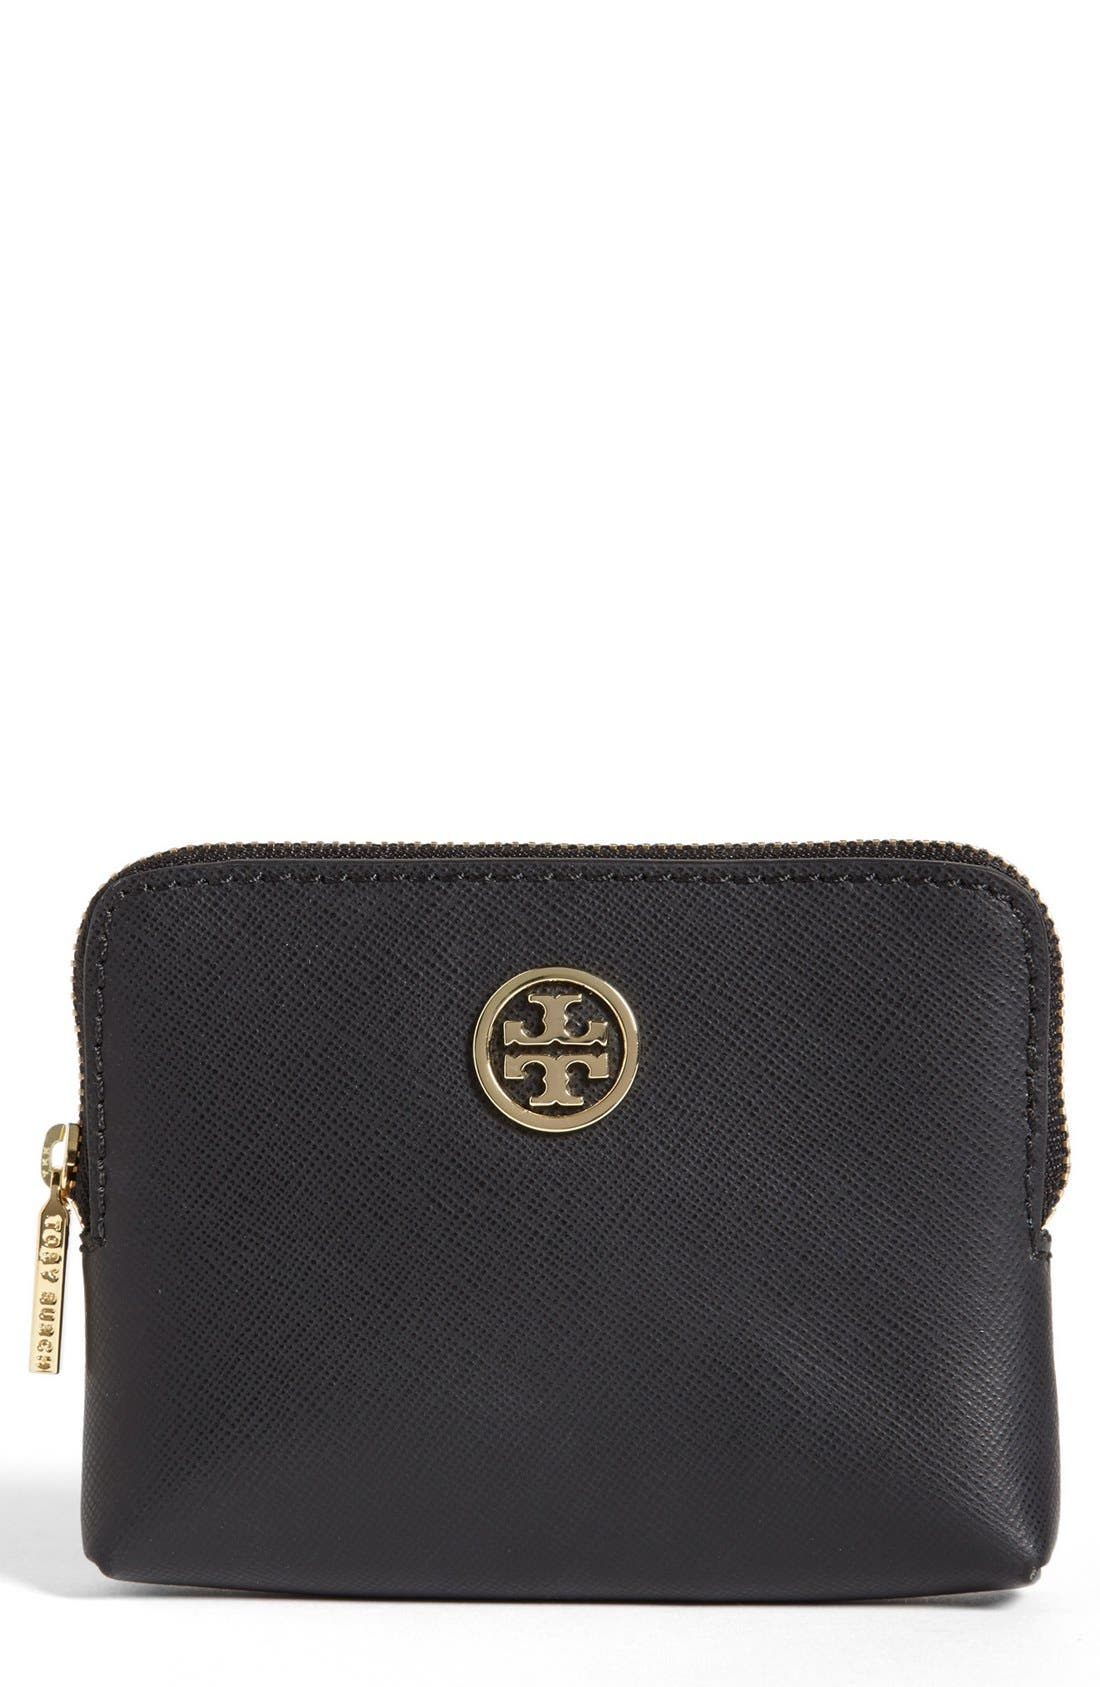 Main Image - Tory Burch 'Robinson' Saffiano Leather Coin Case